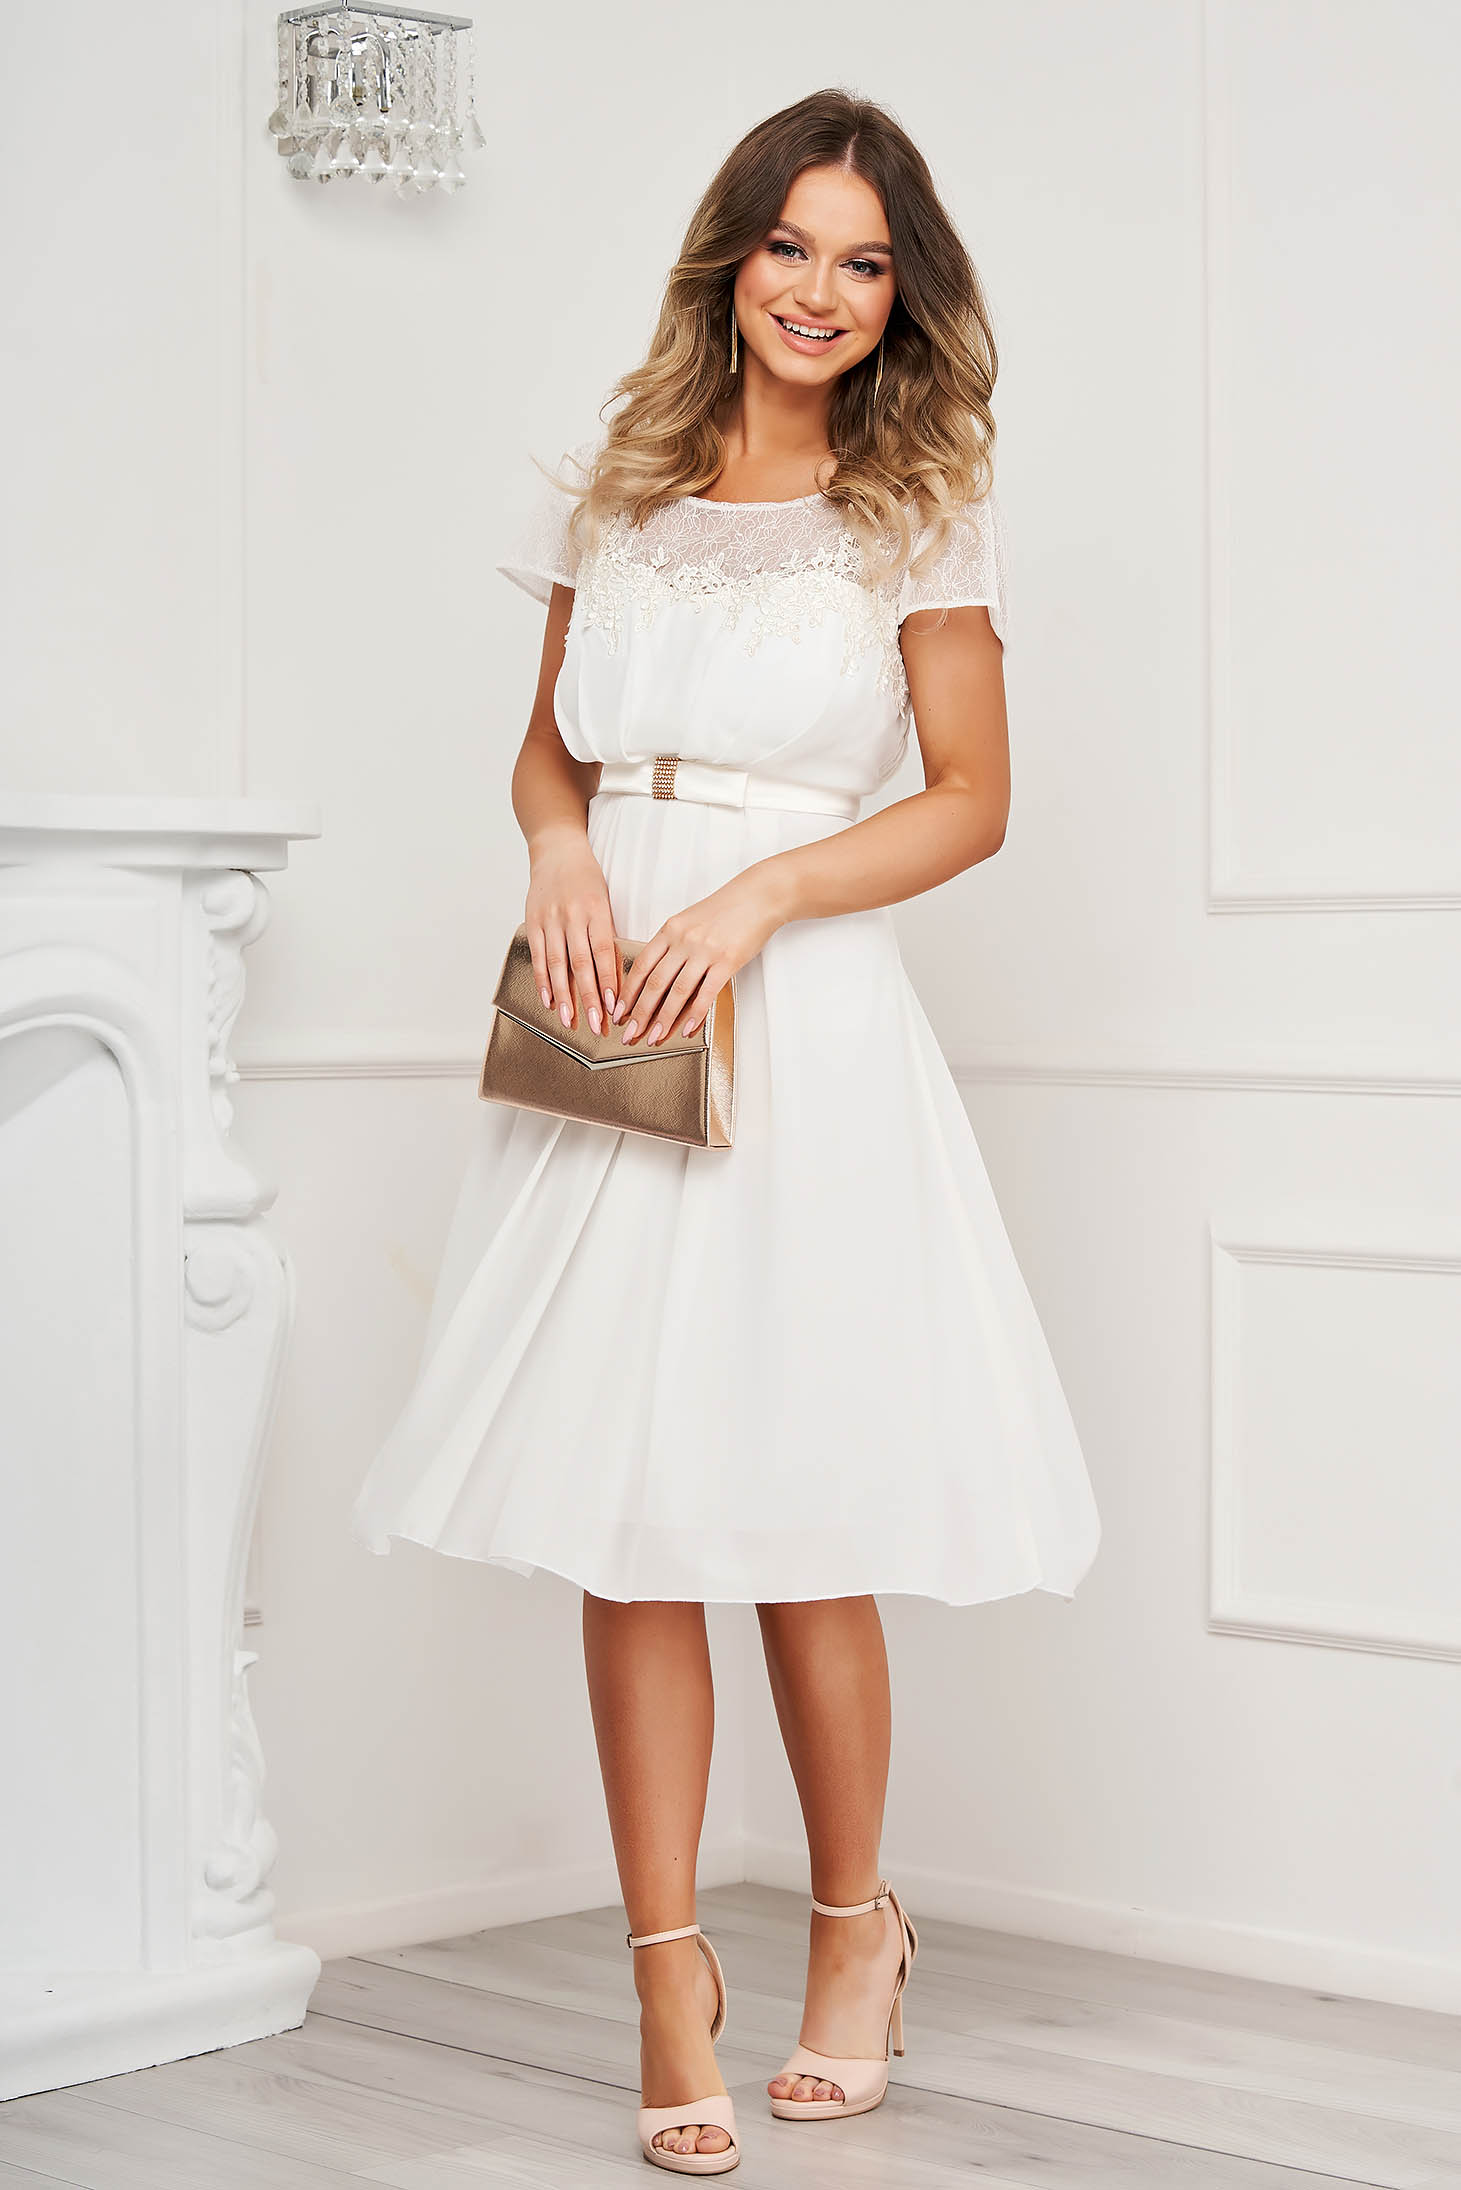 White dress short cut occasional from veil fabric with embroidery details